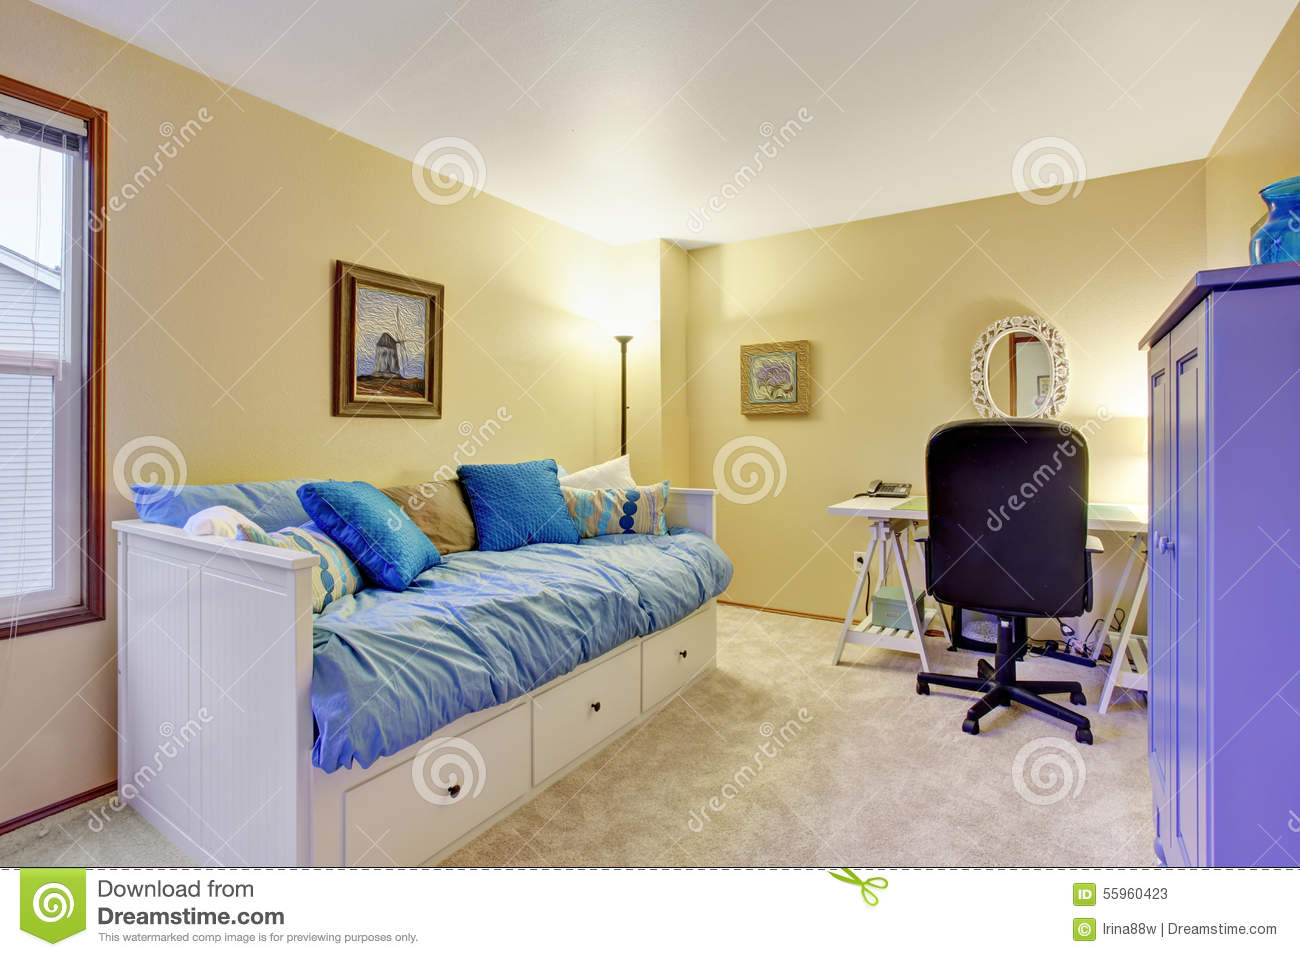 Swell Nice Office Room With Desk And Couch Stock Image Image Of Interior Design Ideas Gentotryabchikinfo